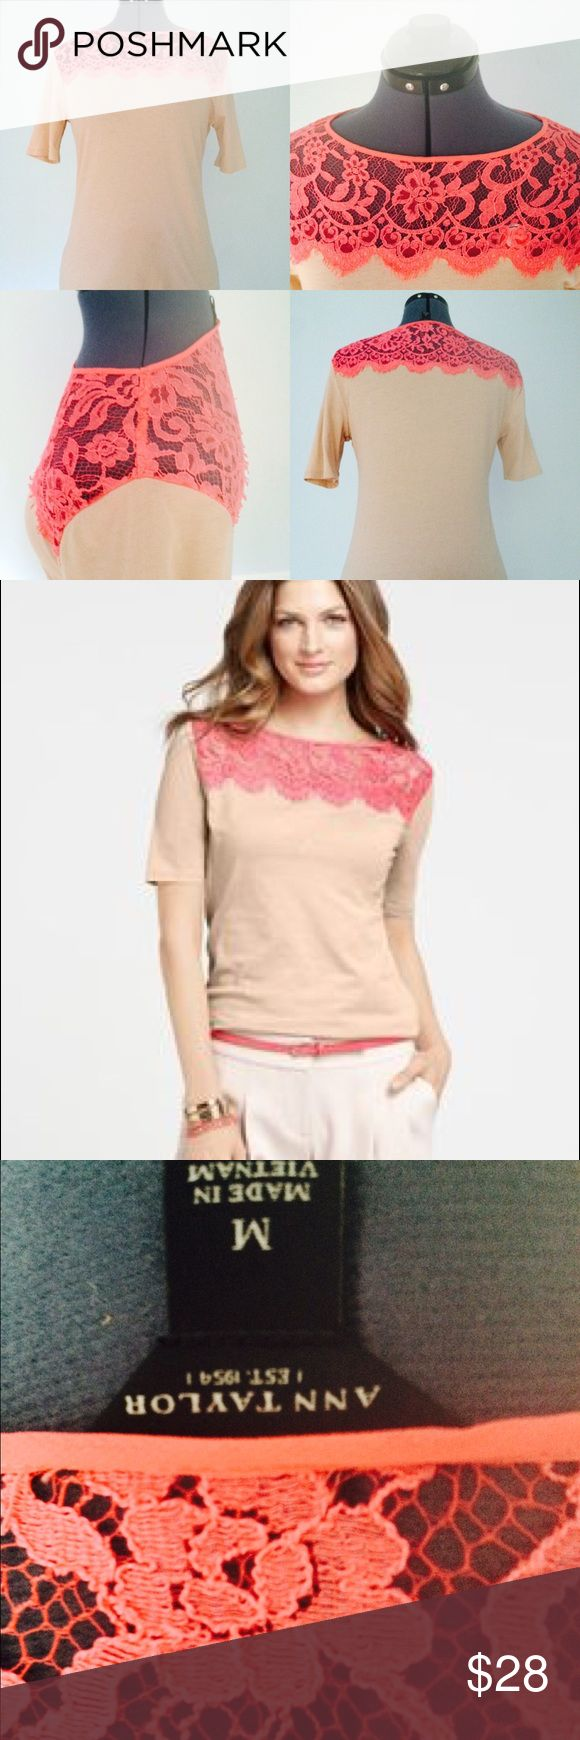 ANN TAYLOR Yoke Tee beige and Pink lace ANN TAYLOR Yoke Tee beige and Pink lace Top. Sz M. Ann Taylor Tops Tees - Short Sleeve